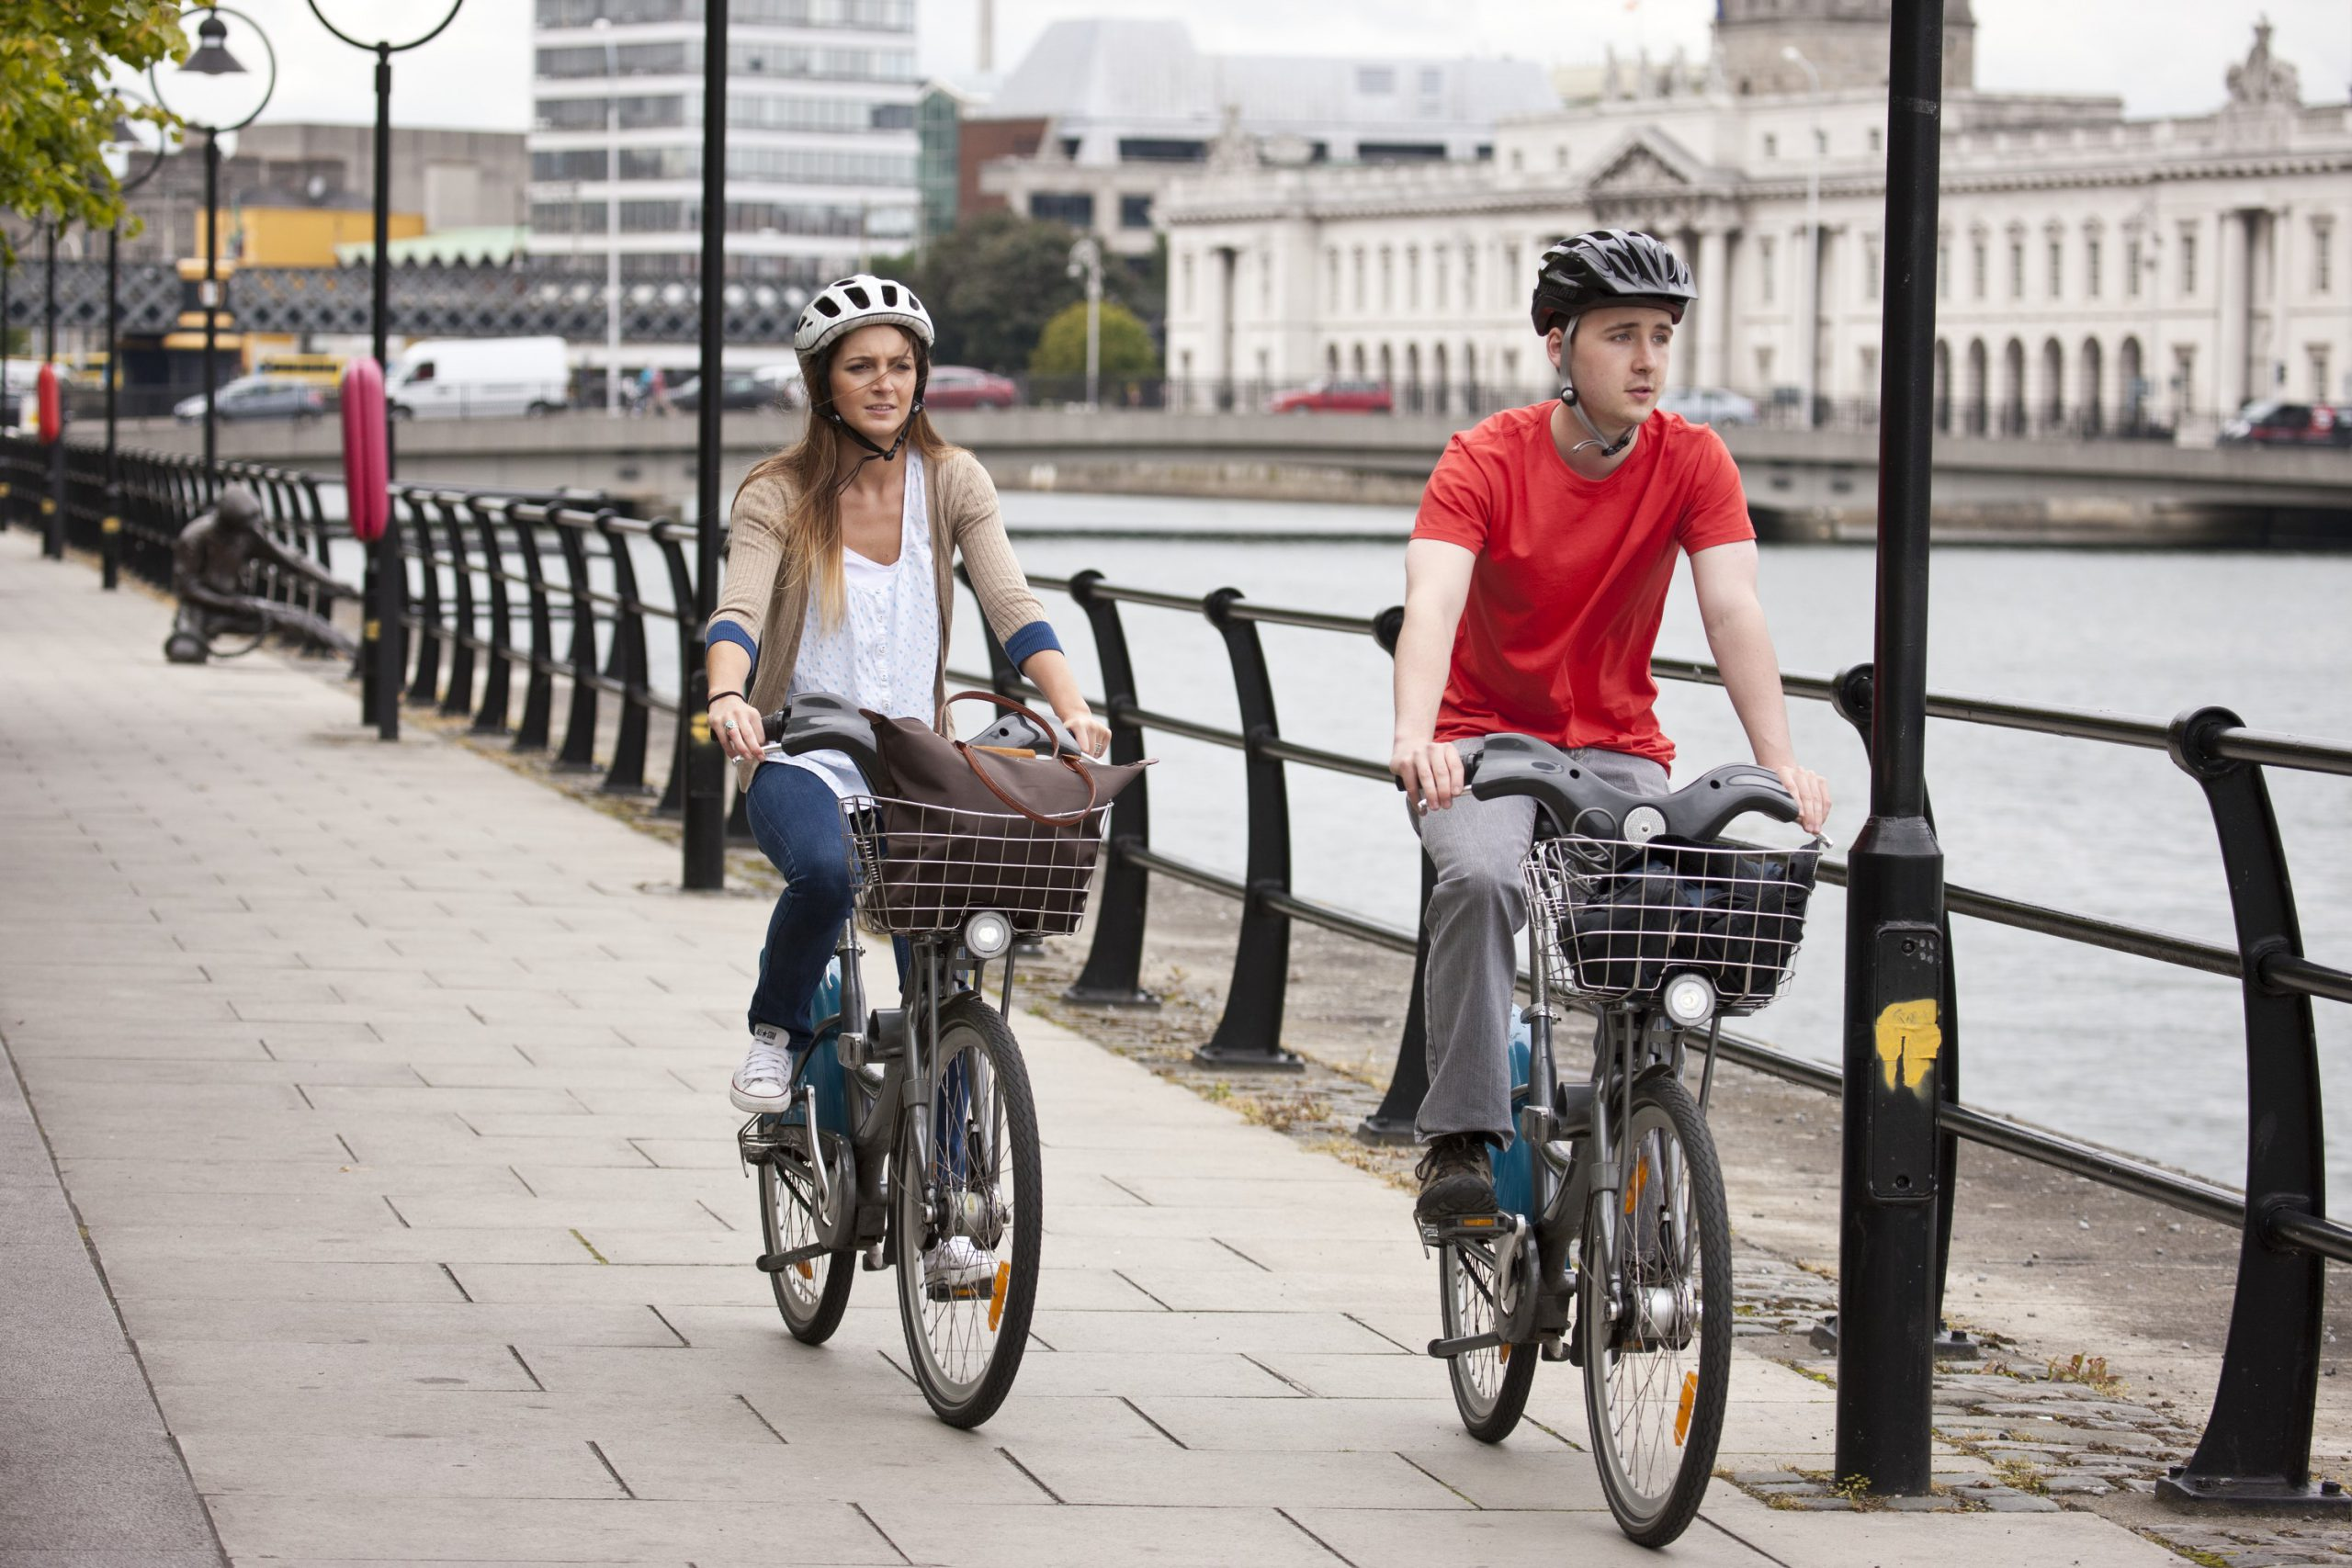 Cycling in Dublin - Jonathon Hessian - cc